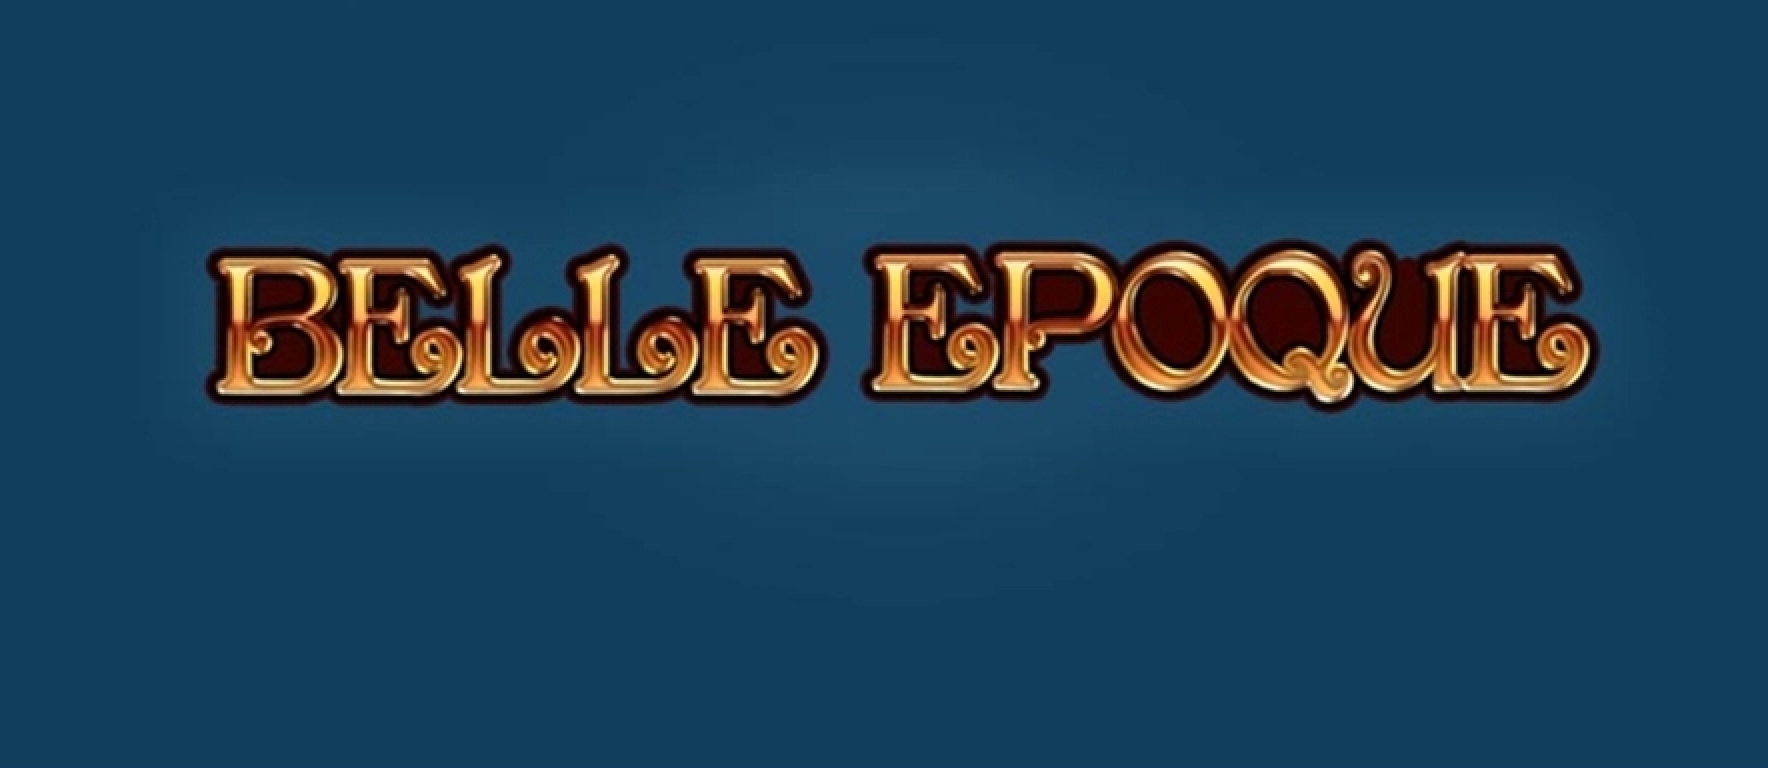 Win Money in Belle Epoque Free Slot Game by Swintt